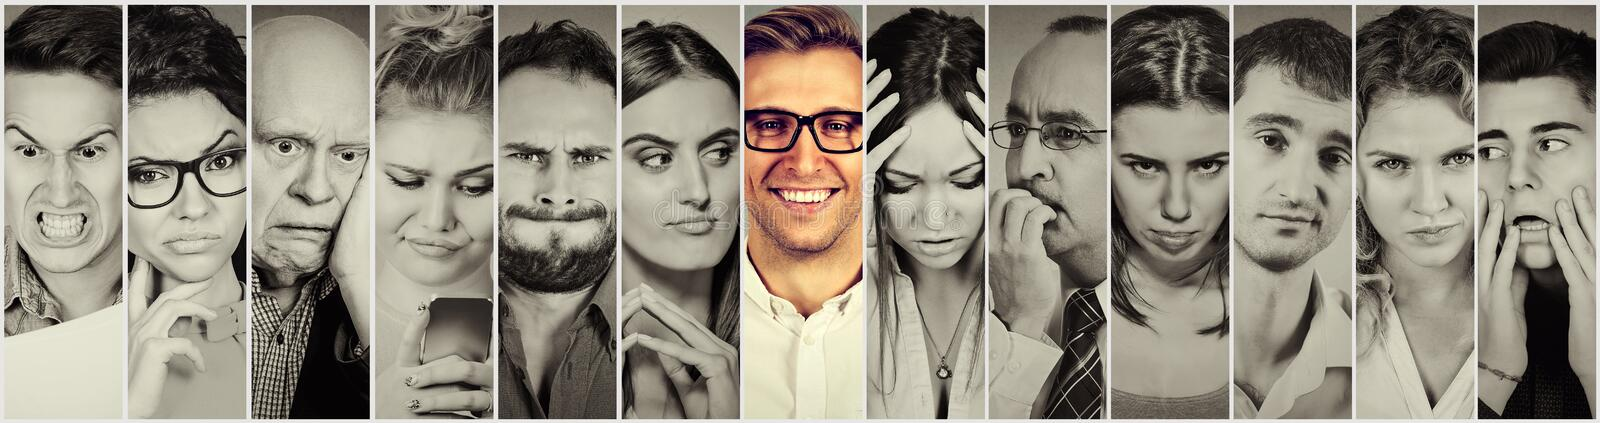 Outlier. Group of negative people and happy man stock image